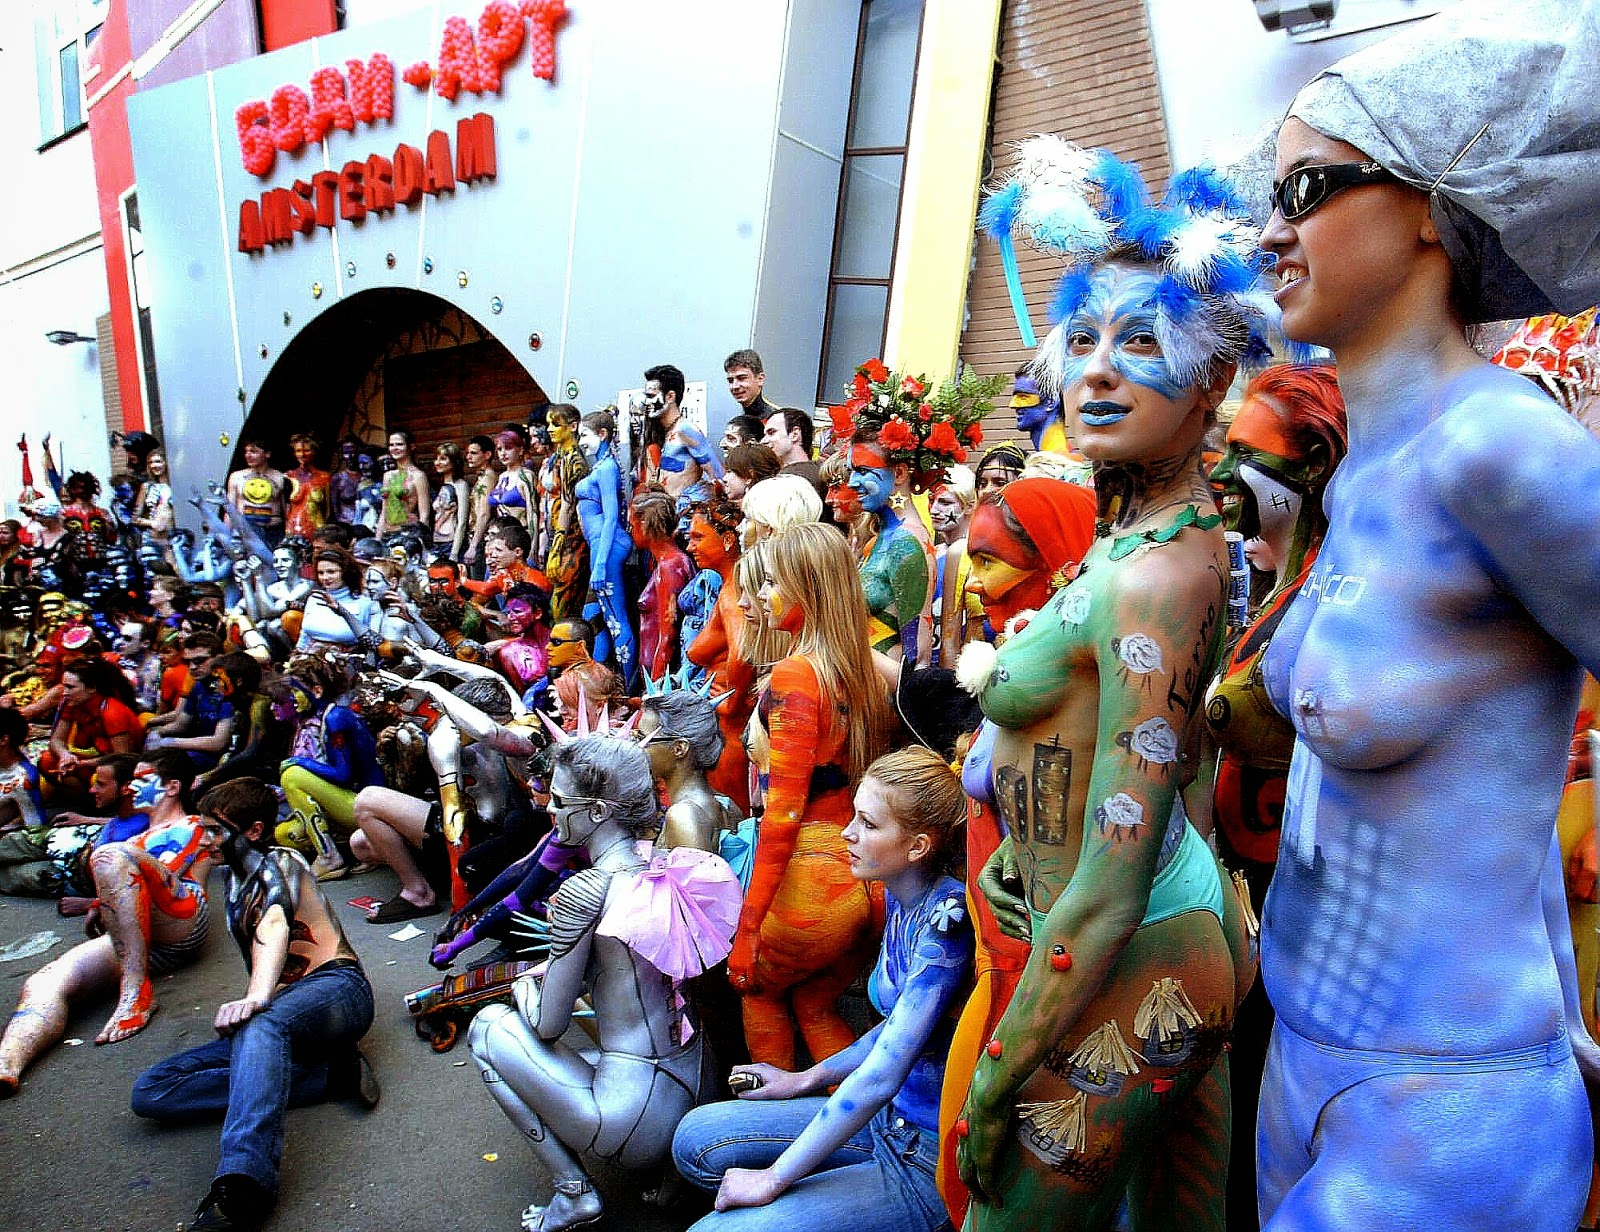 Crowd Scenes Paintings Outdoors_crowd_body_painting